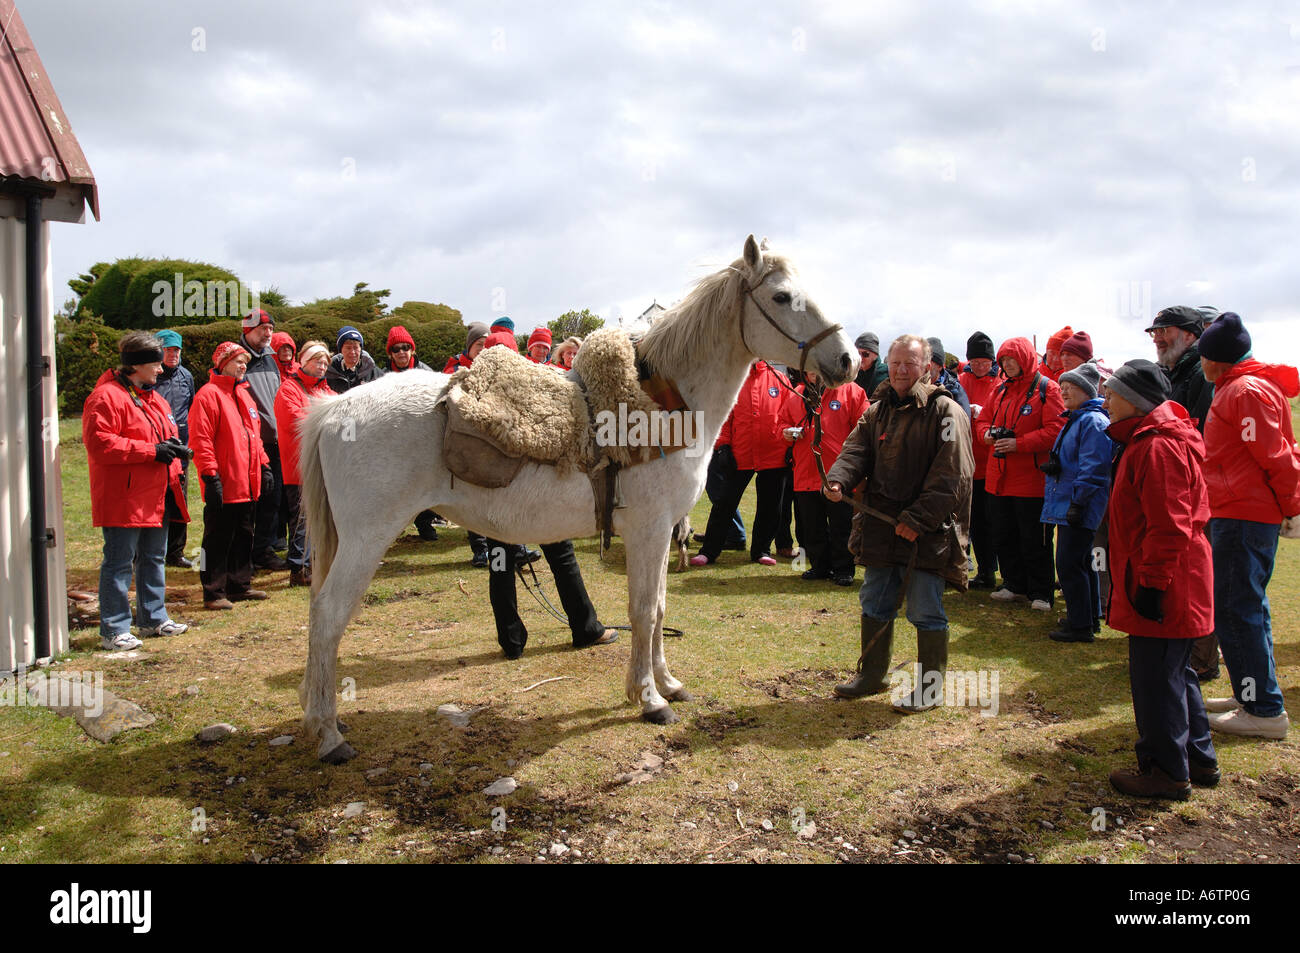 Tourist from a cruise ship watch a display of traditional horse riding at Long Island Farm, Falkland Islands - Stock Image